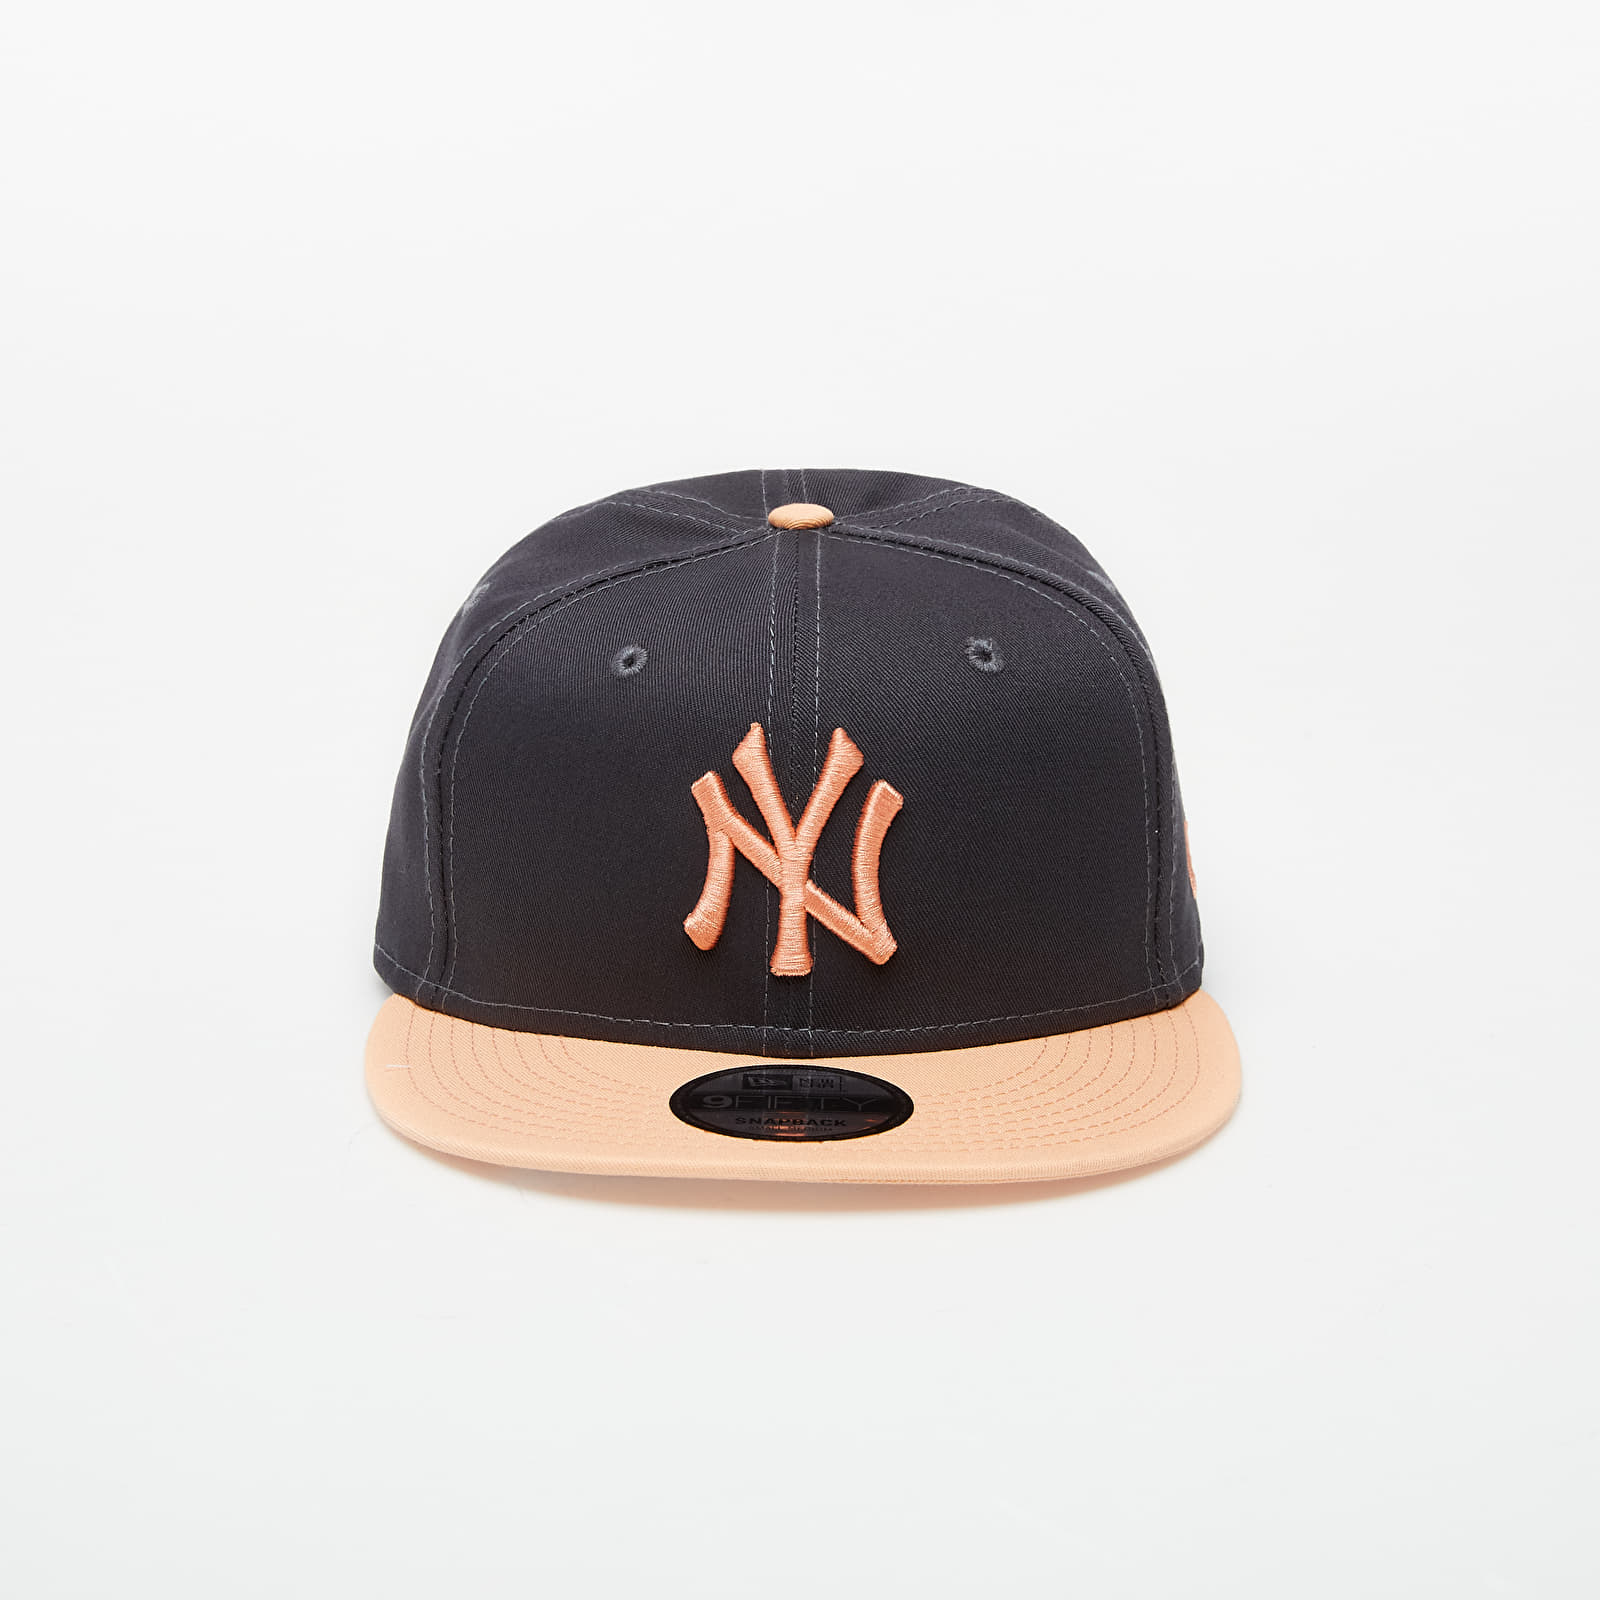 Baseball sapkák New Era 9Fifty NFL Pre Curved New York Yankees Cap Grey/ Peach